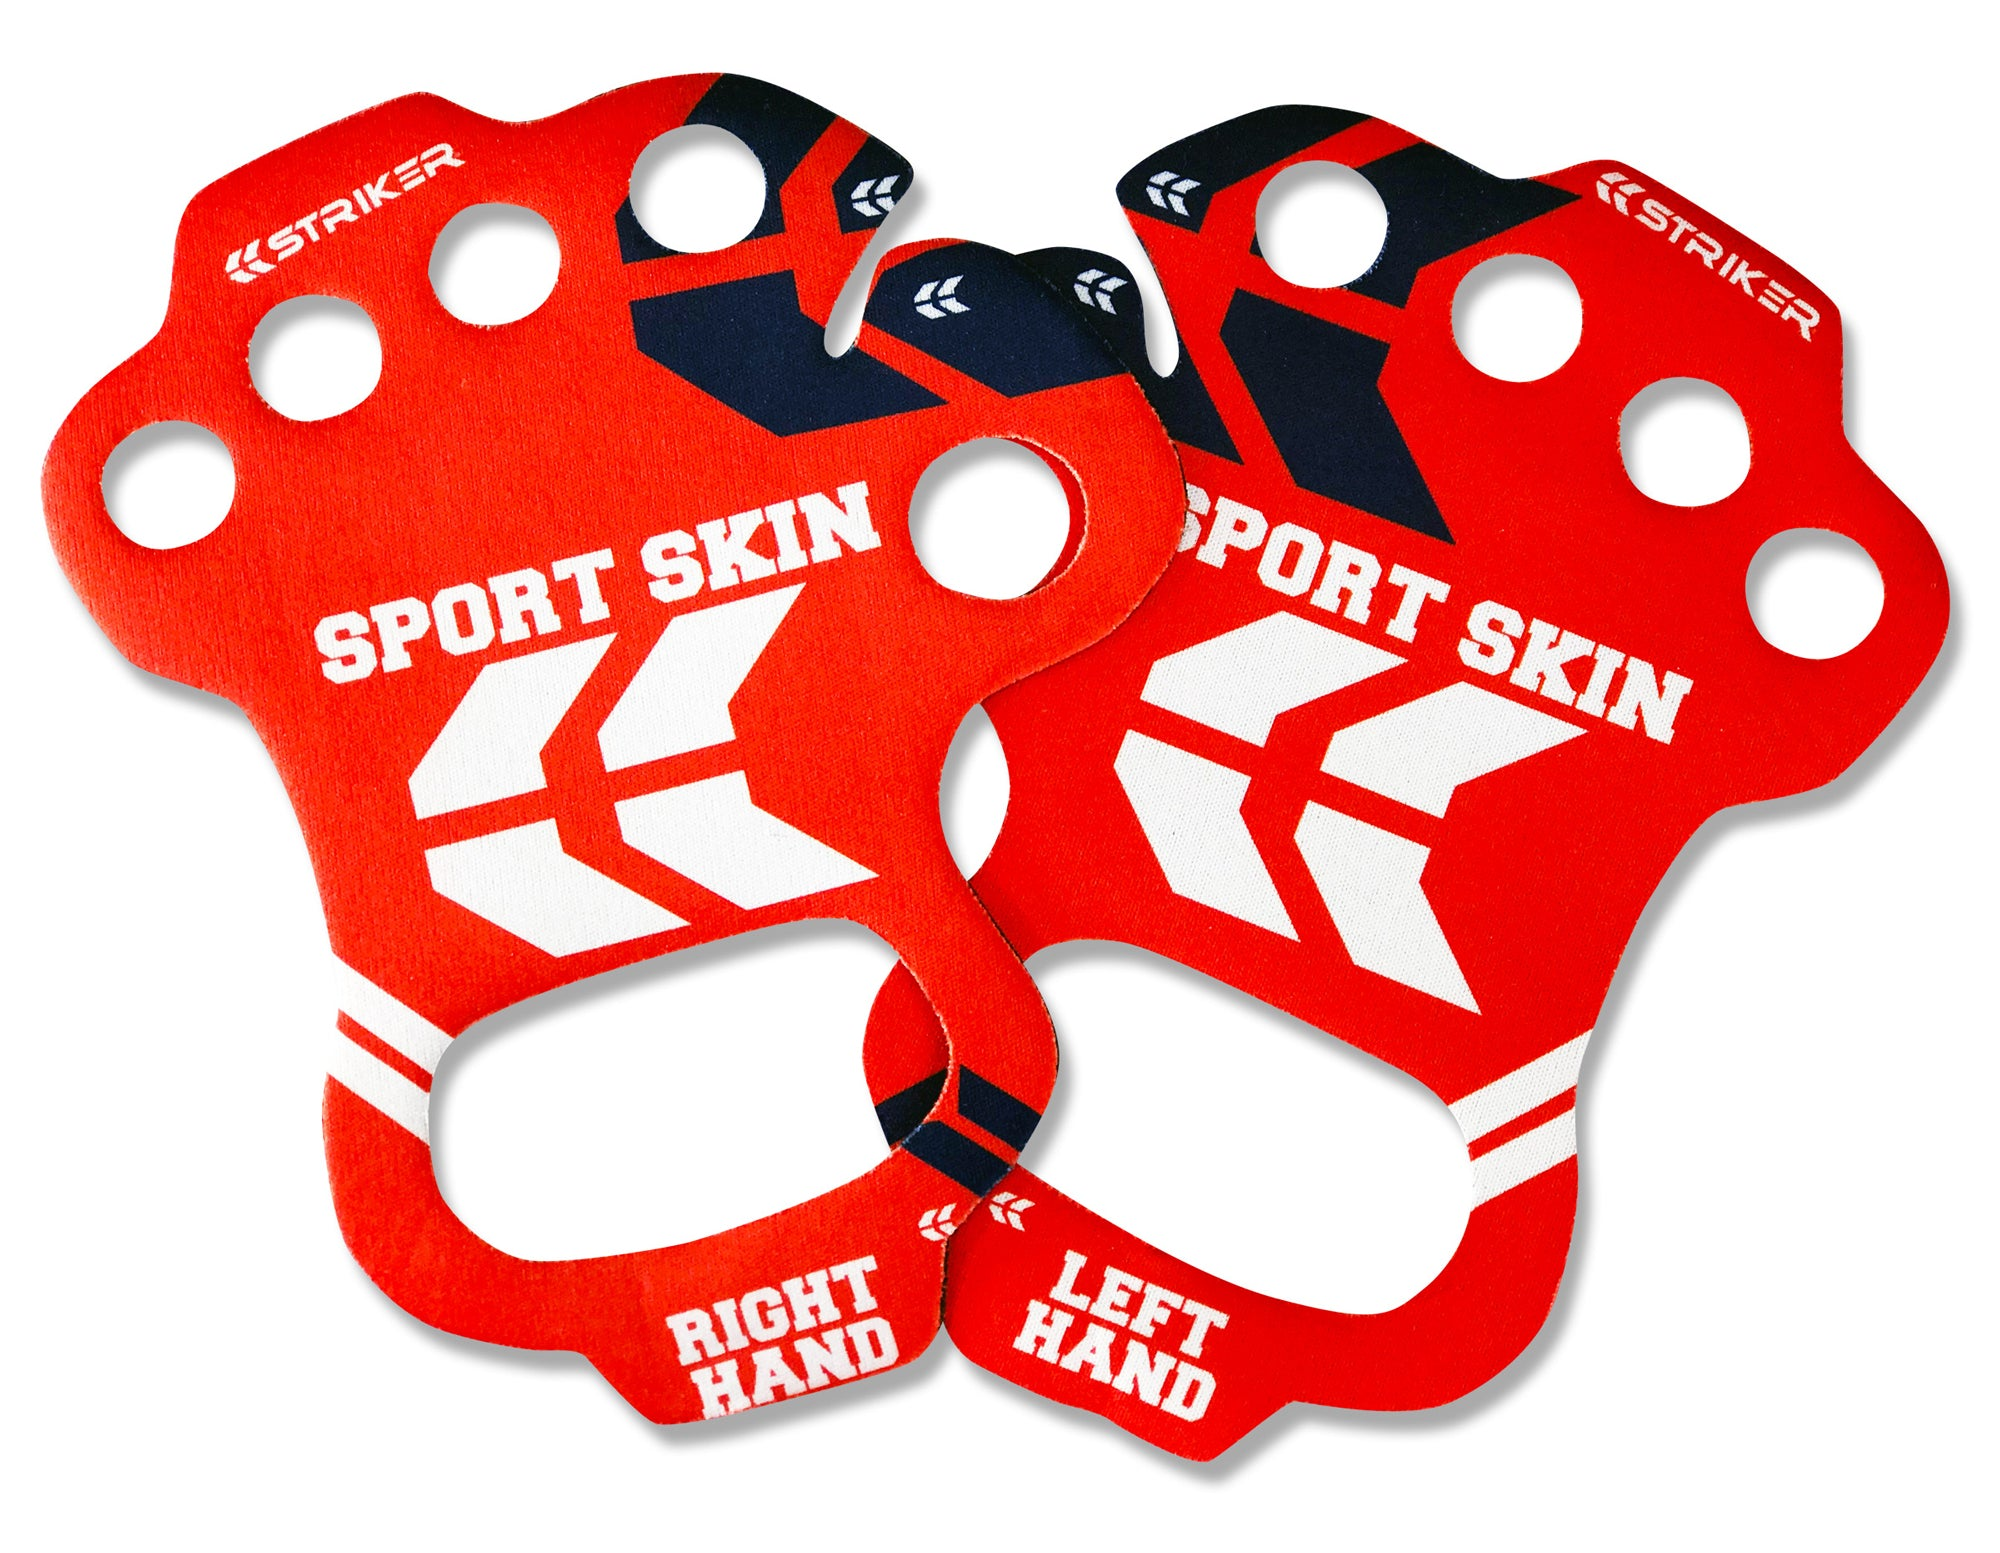 Striker Sport Skin pair included in packaging